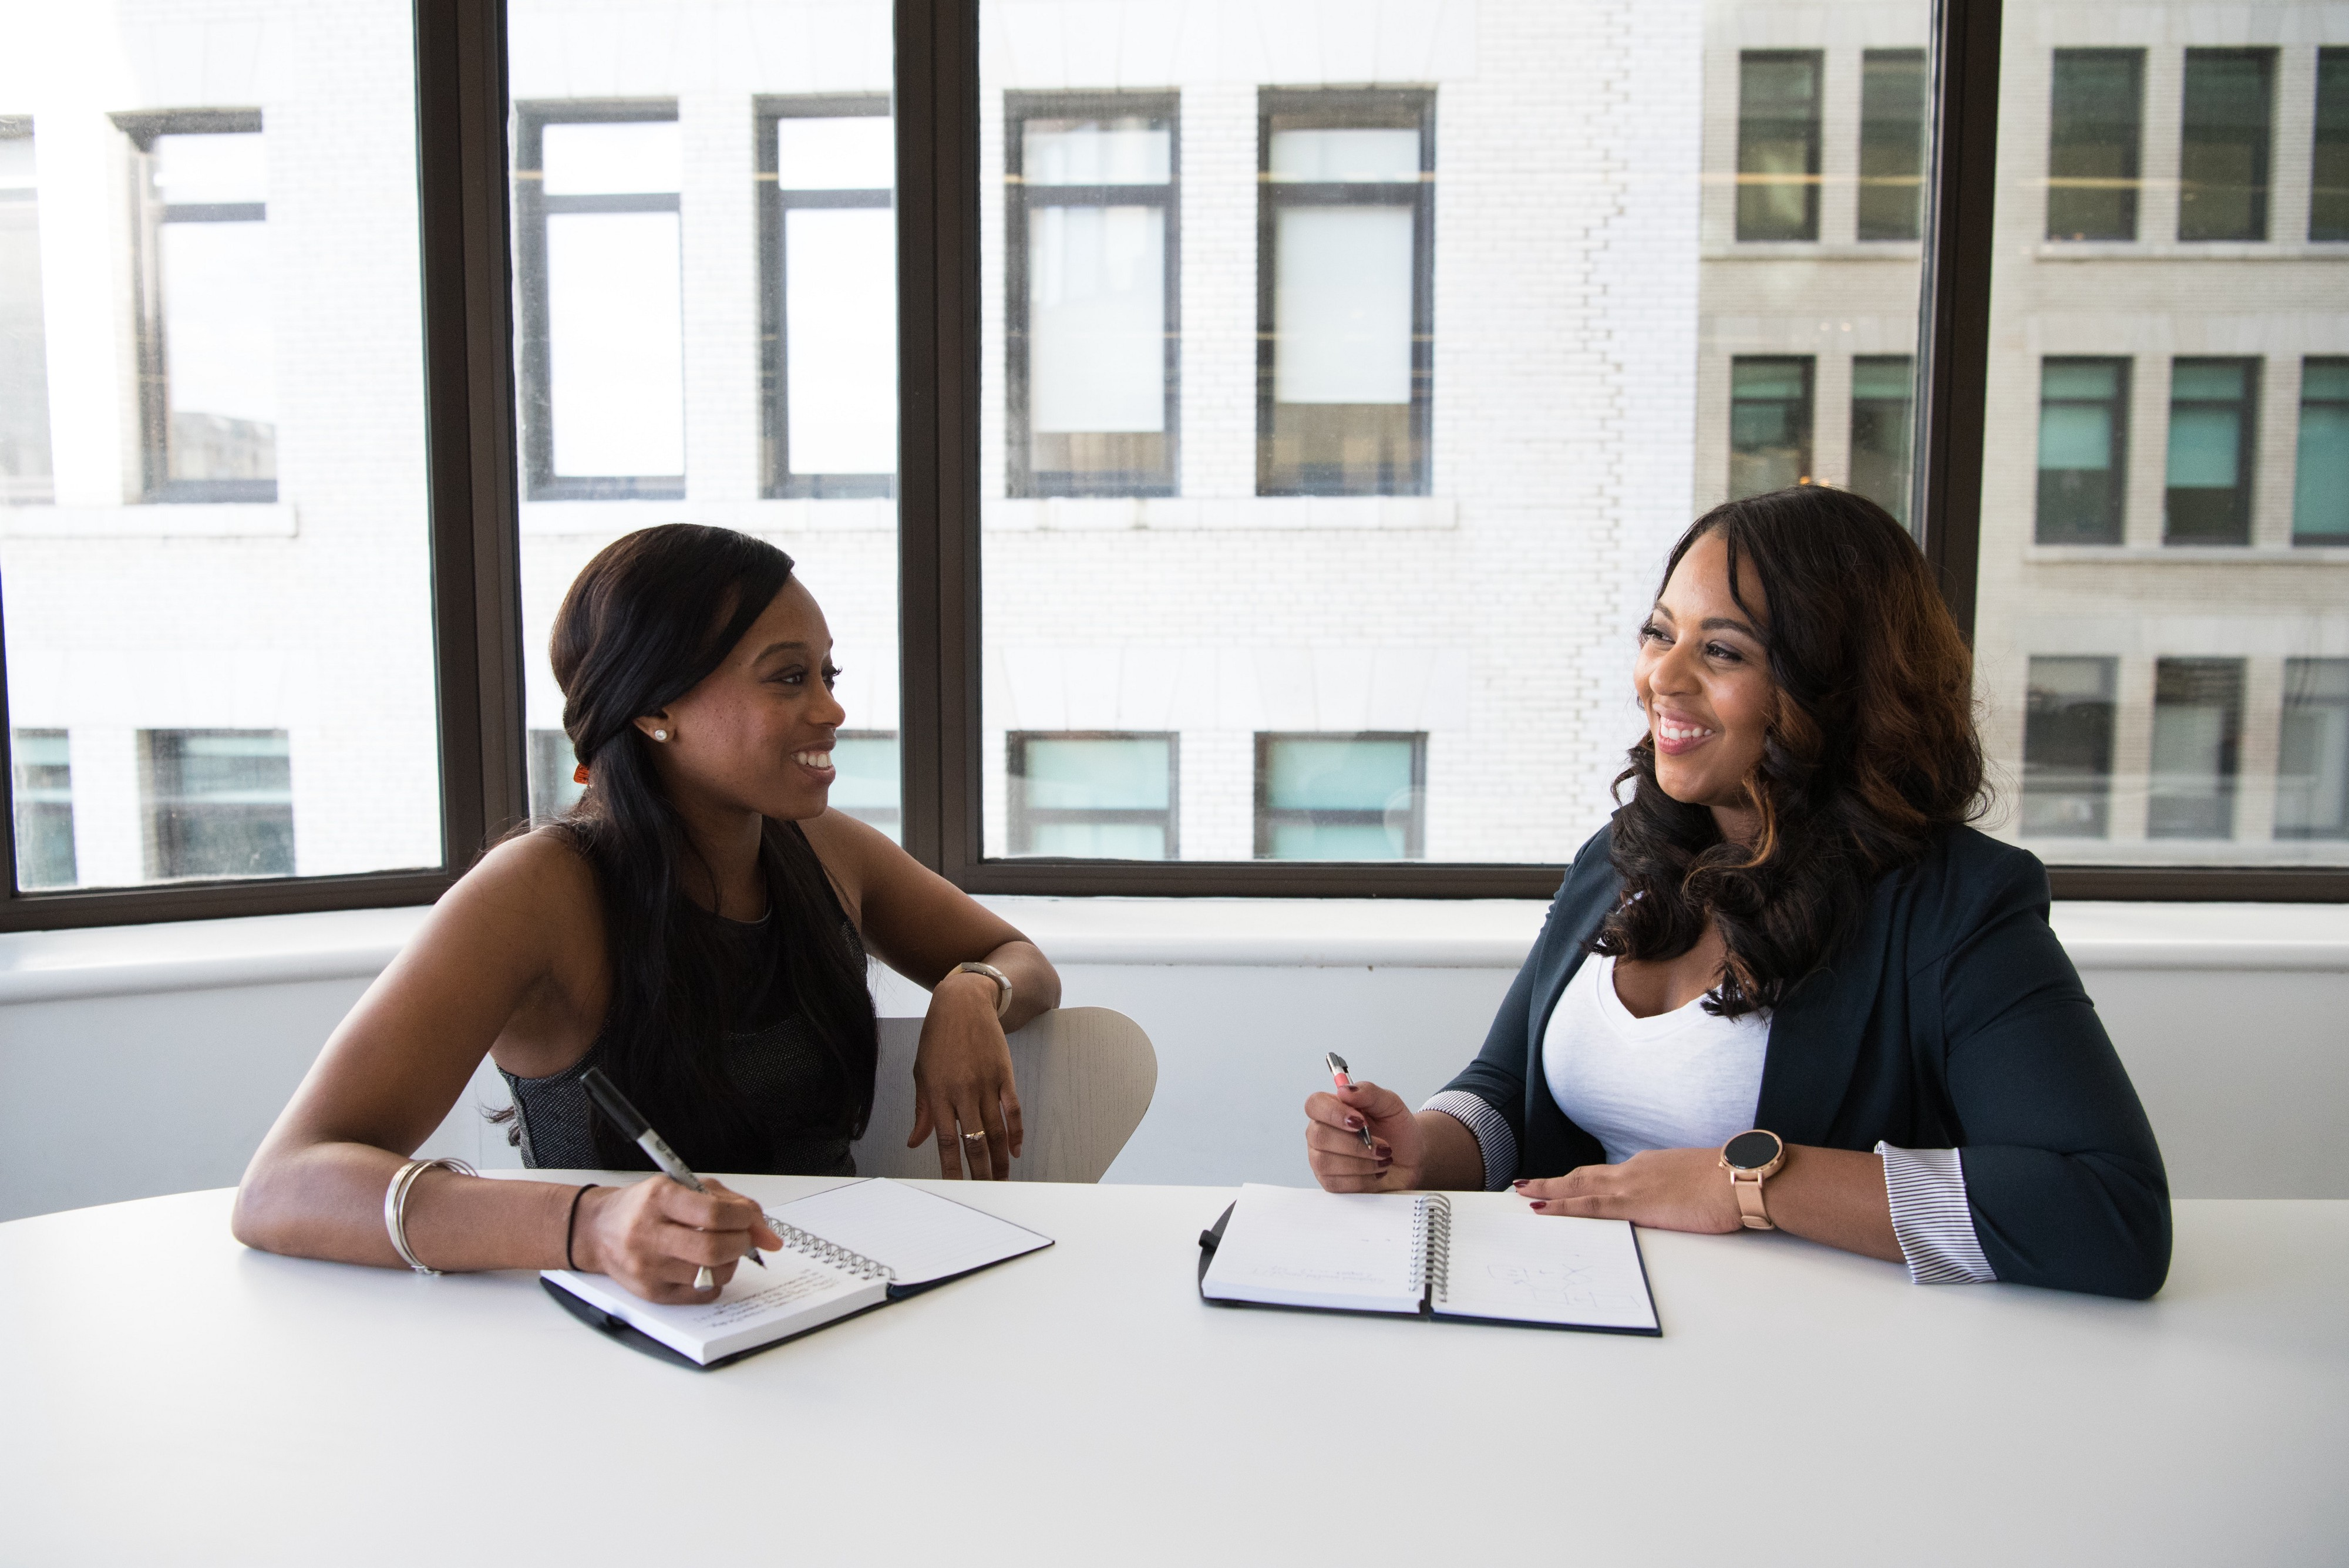 predictive analyitcs in retention management—Two women of color talking in a meeting